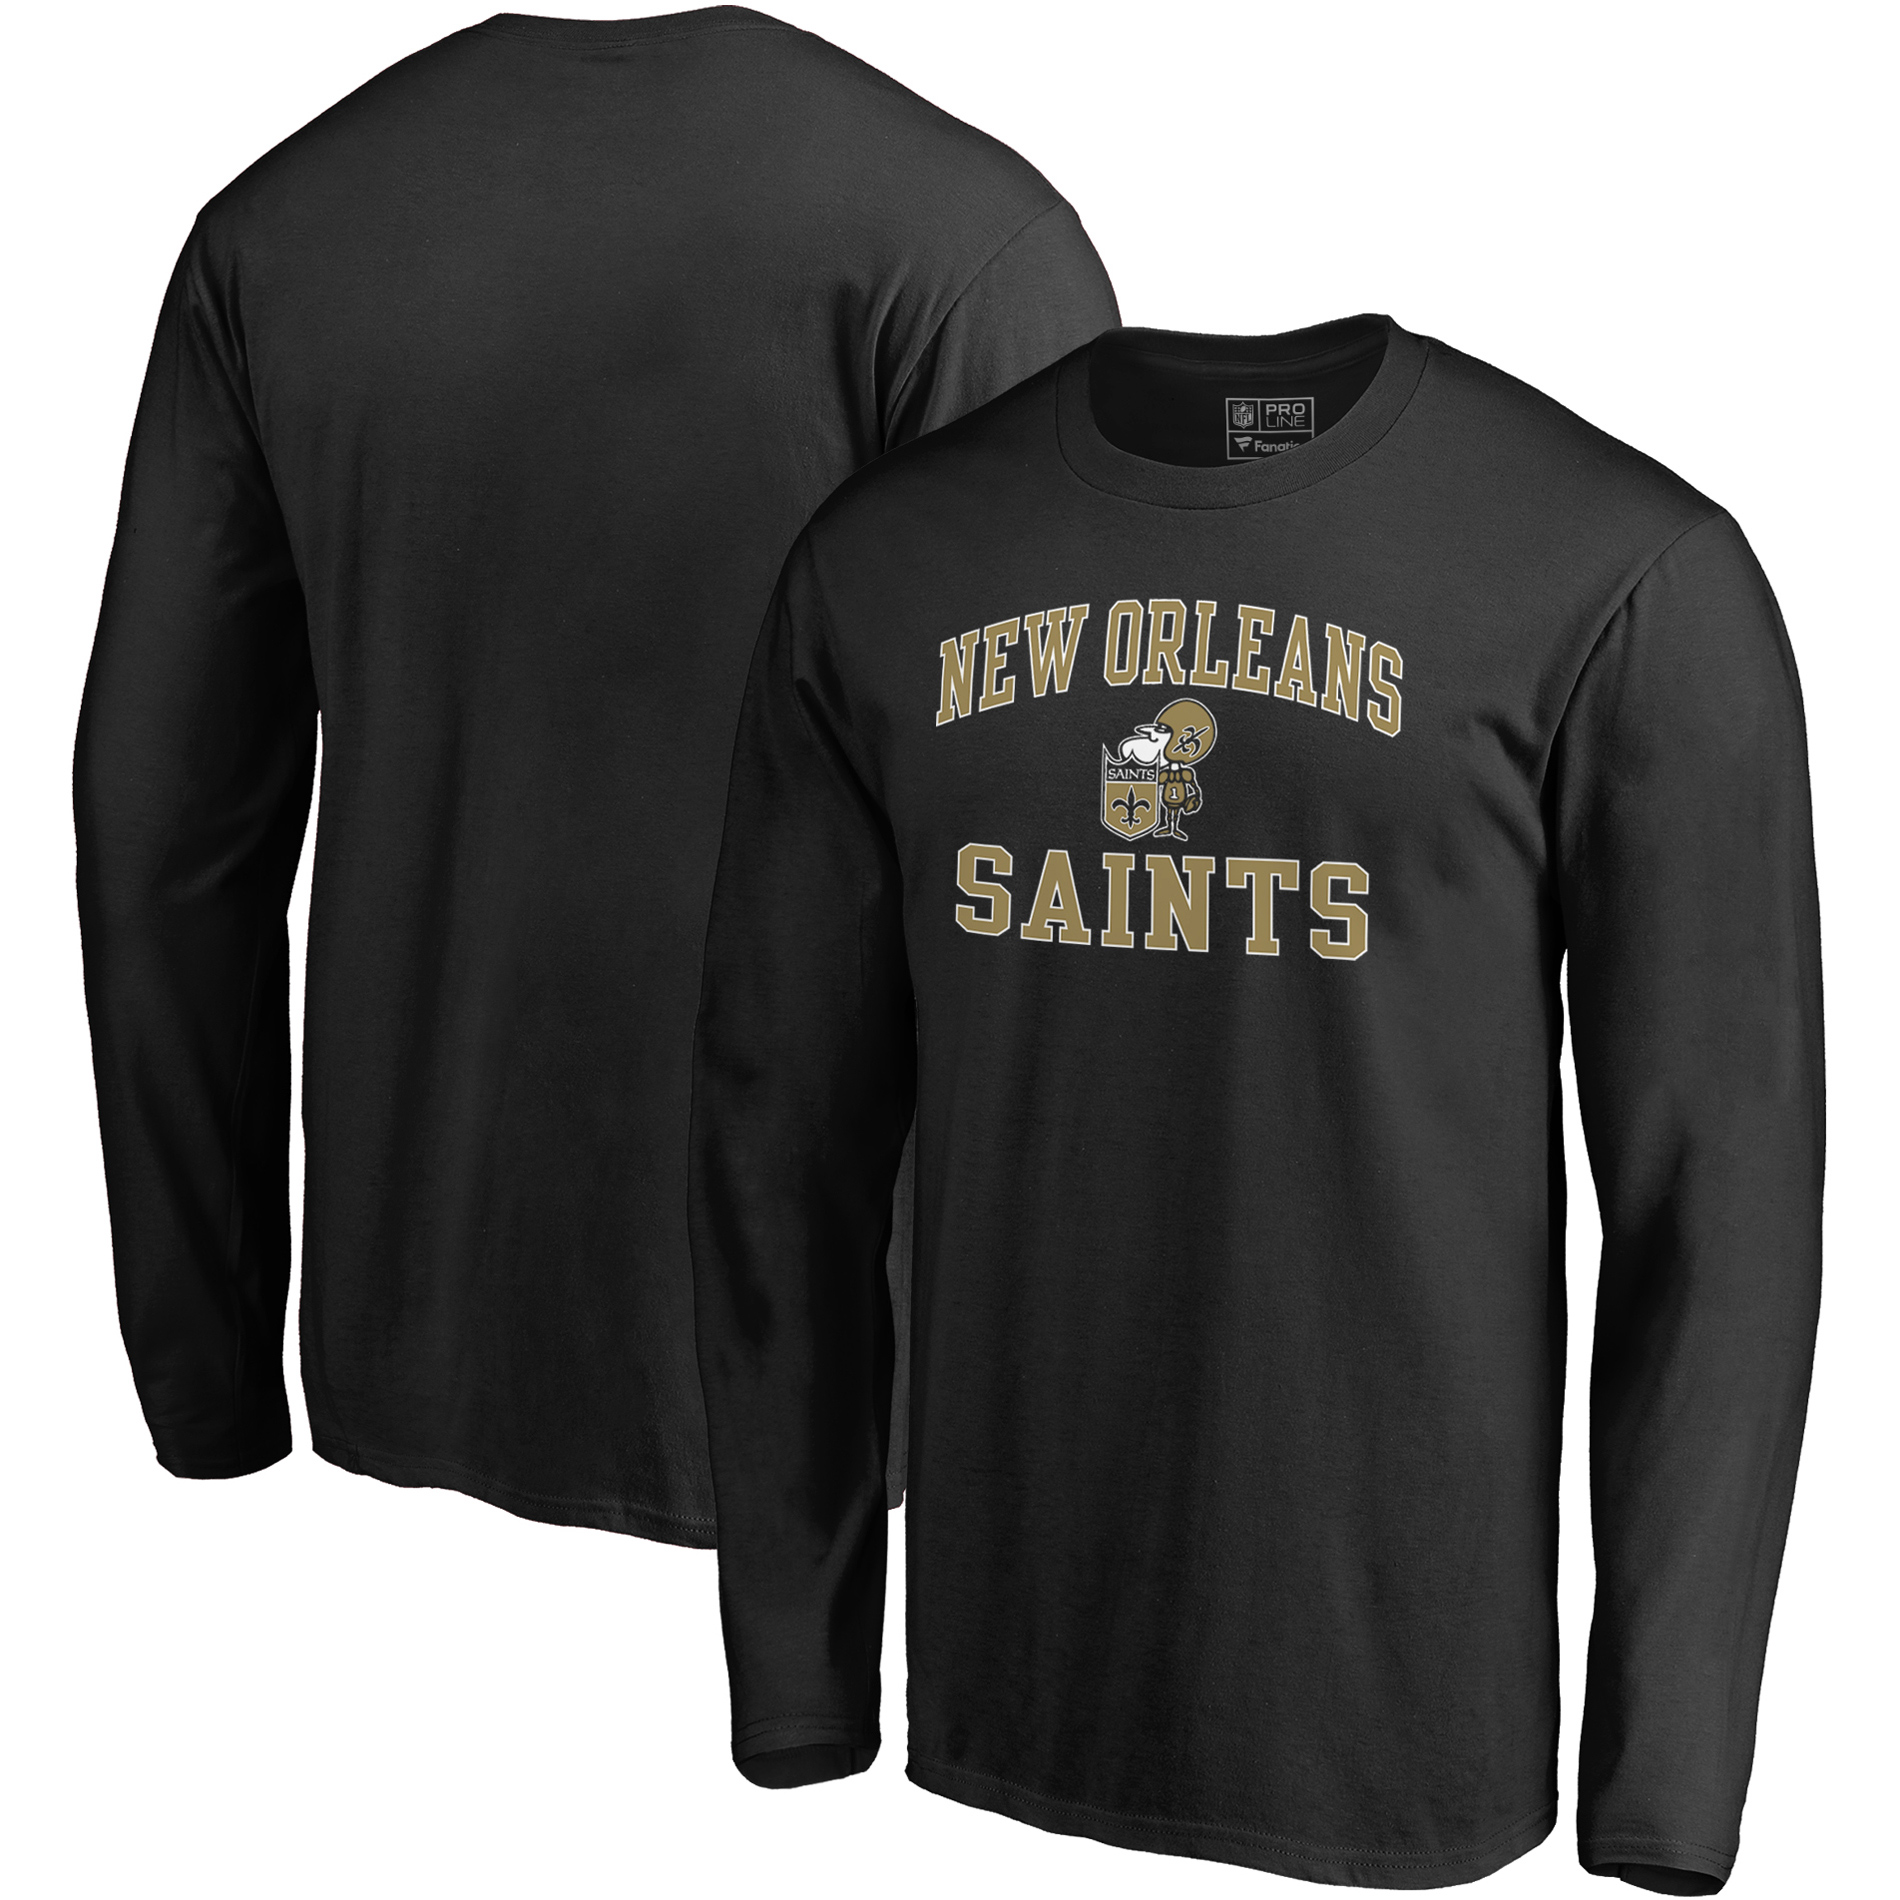 New Orleans Saints NFL Pro Line by Fanatics Branded Vintage Victory Arch Long Sleeve T-Shirt - Black